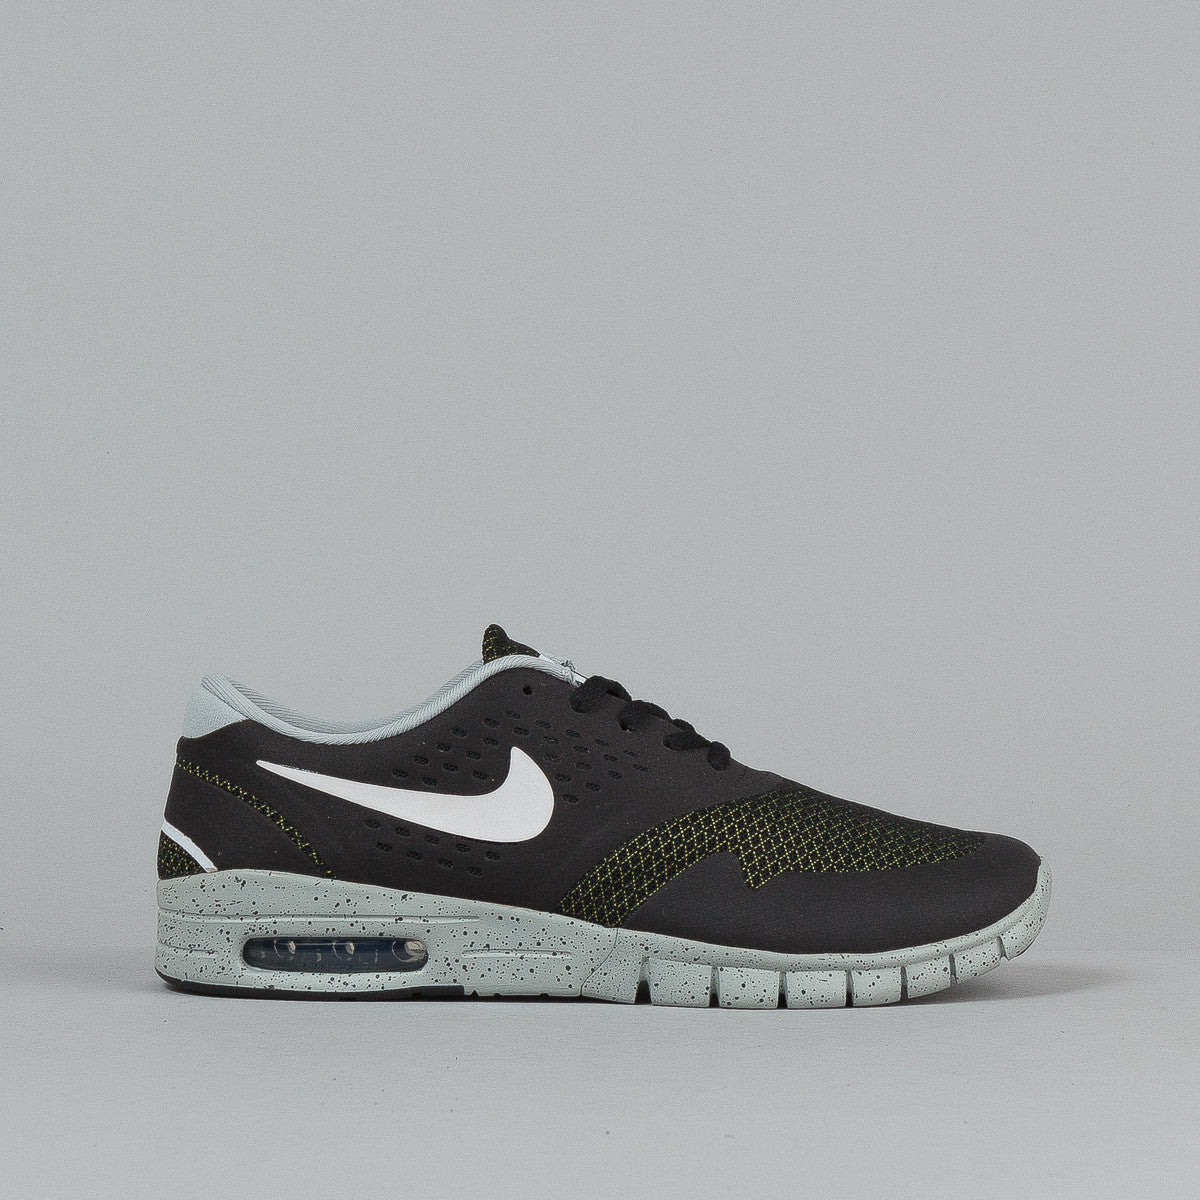 Nike SB Eric Koston 2 Max Black / White